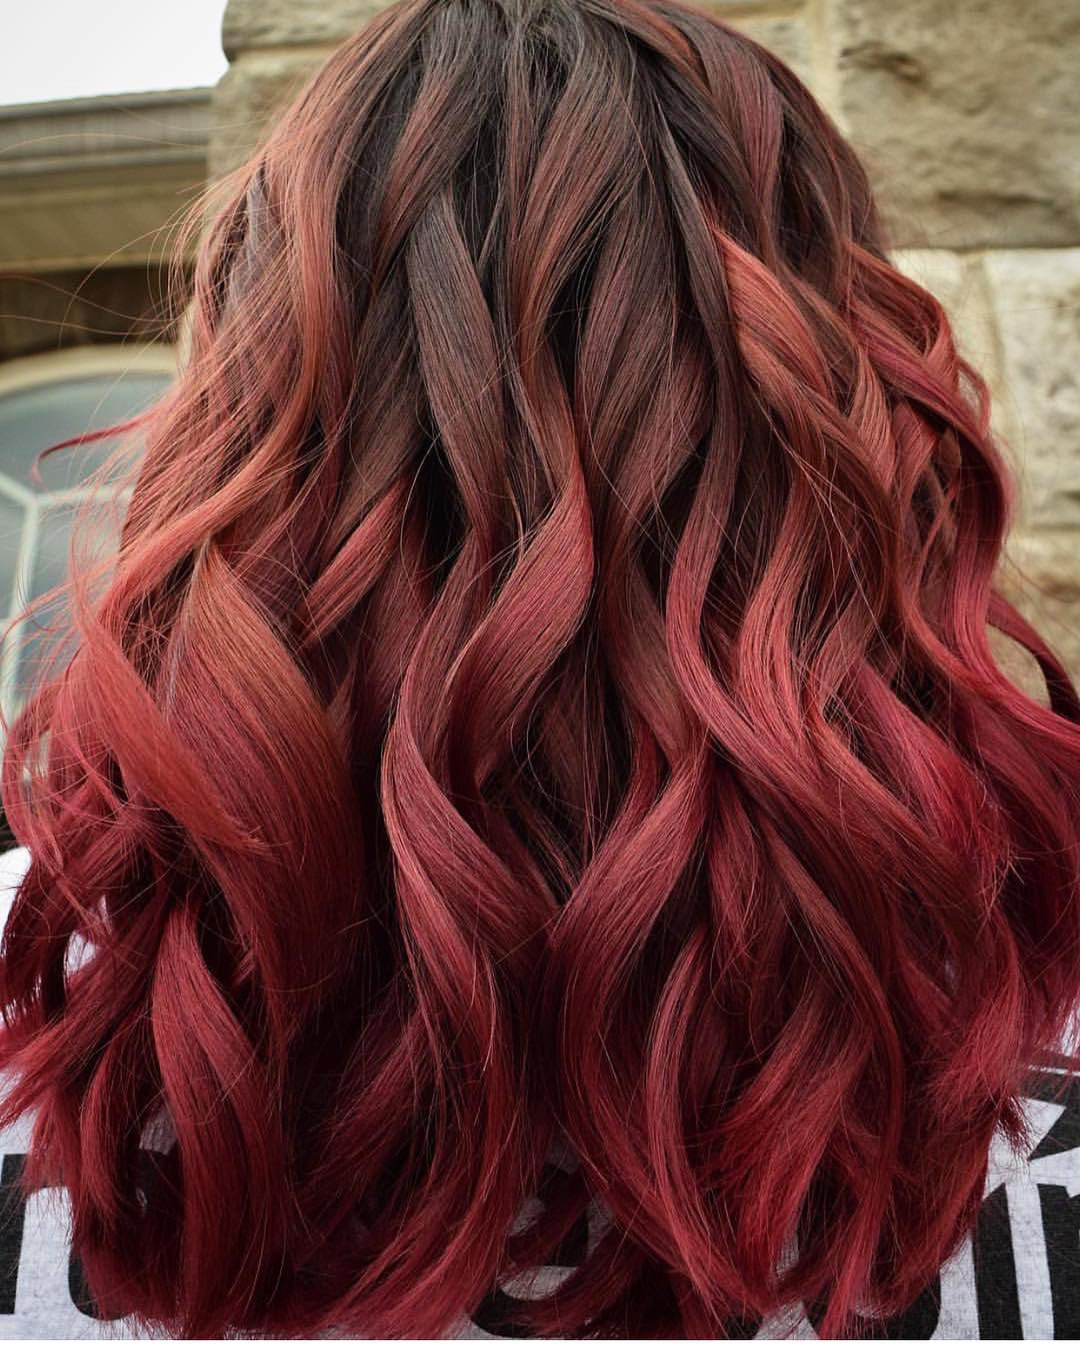 70 Top Hairstyles for Long Thin Hair in 2020 For Women (109)